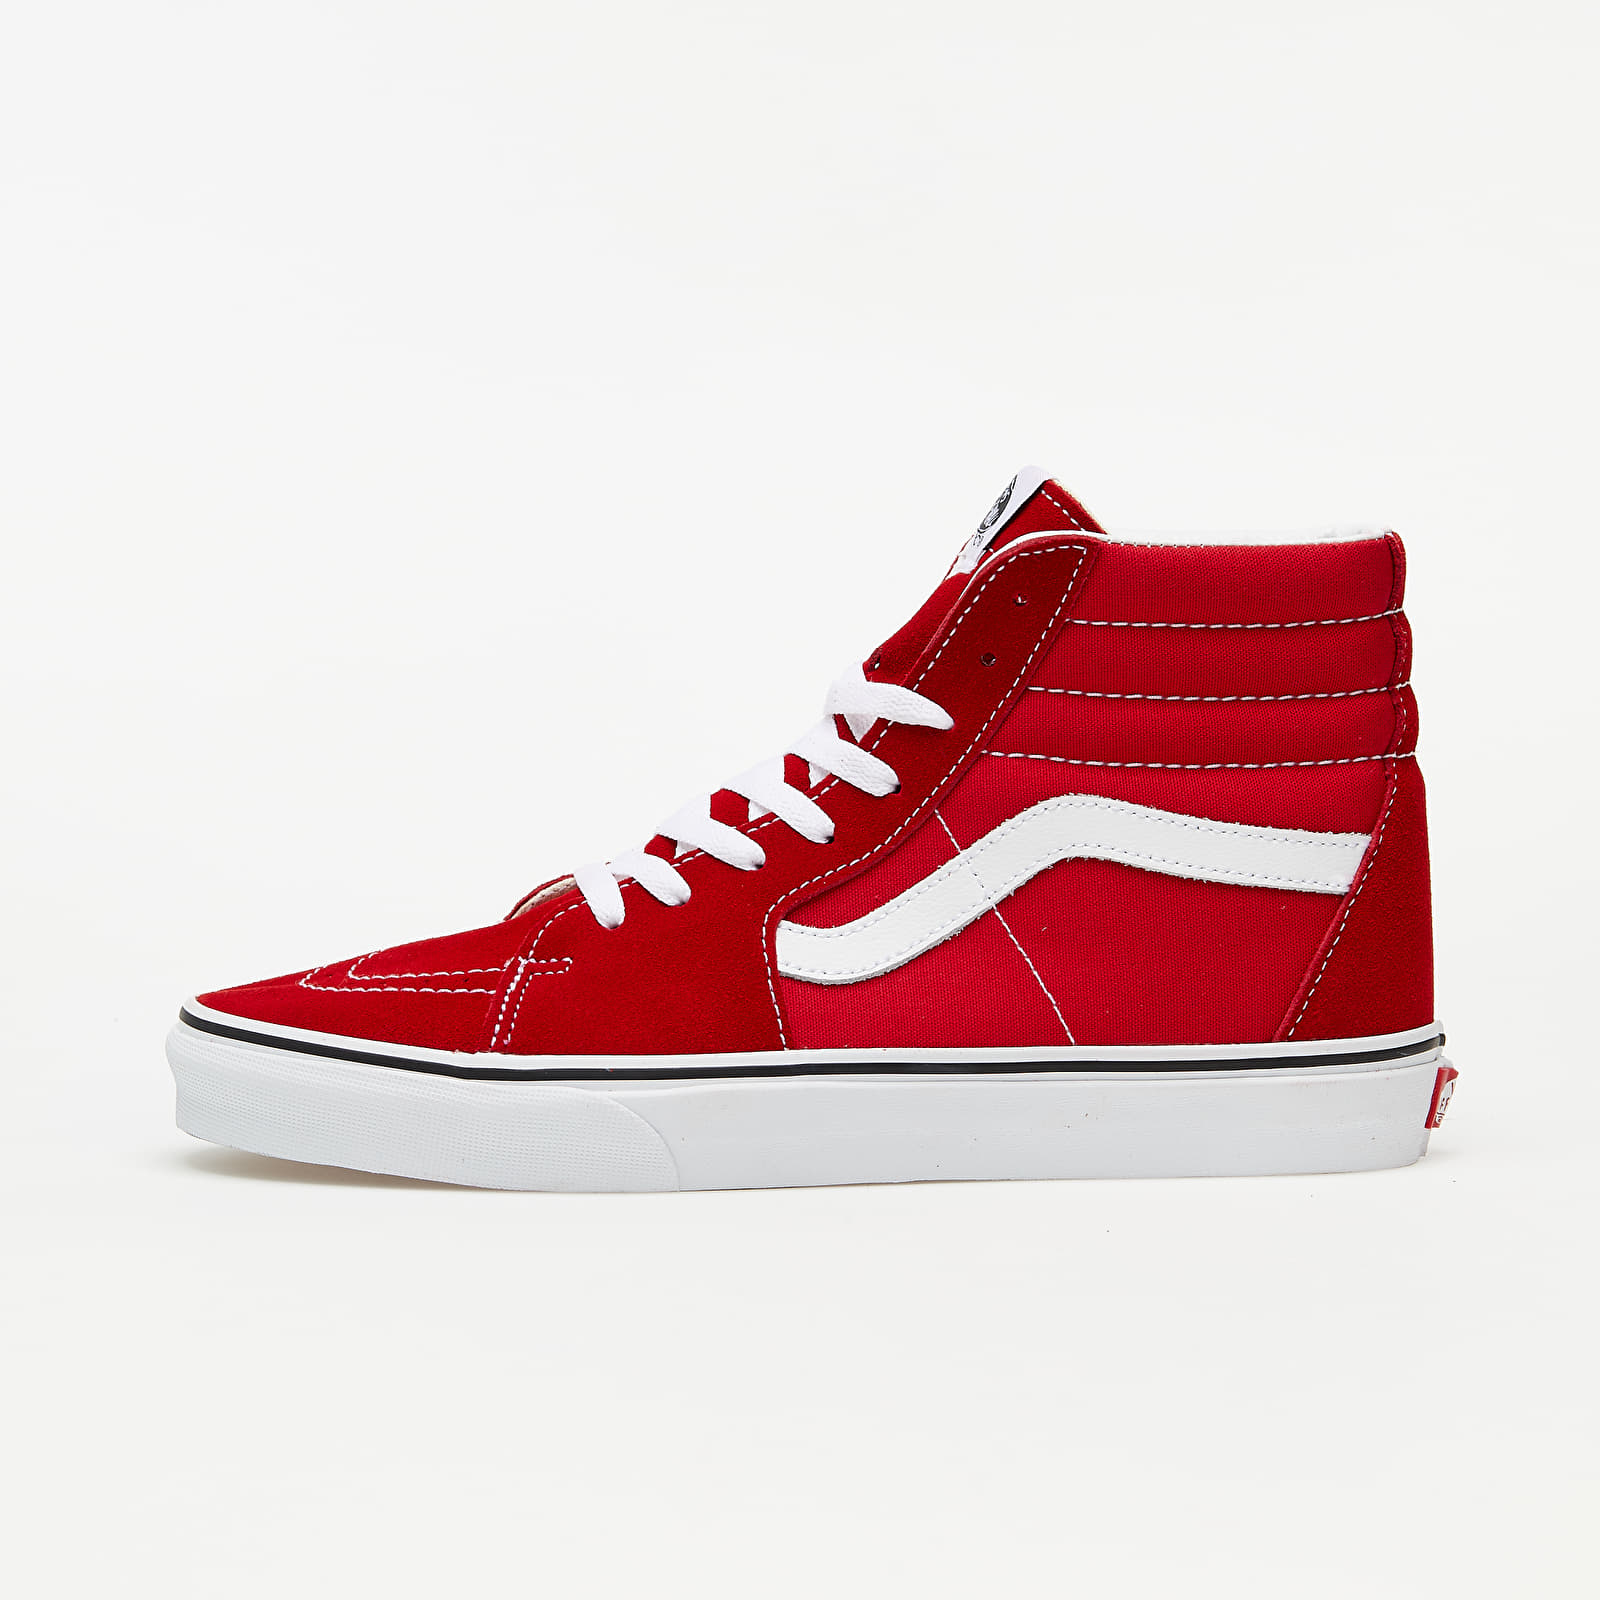 Vans Sk8-Hi Racing Red/ True White VN0A4BV6JV61